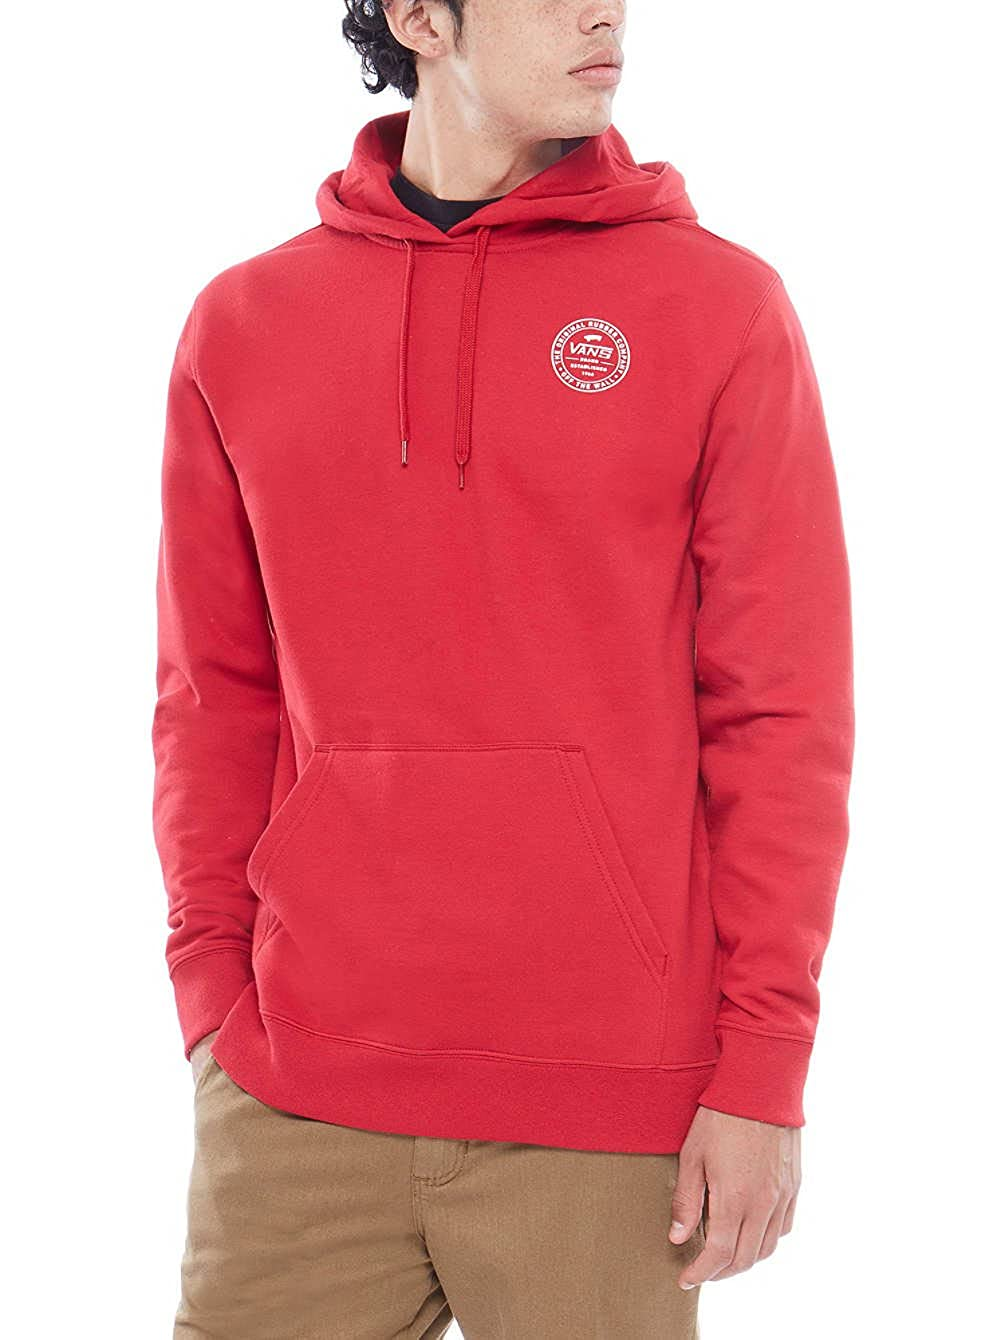 Vans Herren Kapuzenpullover Established 66 Hoodie